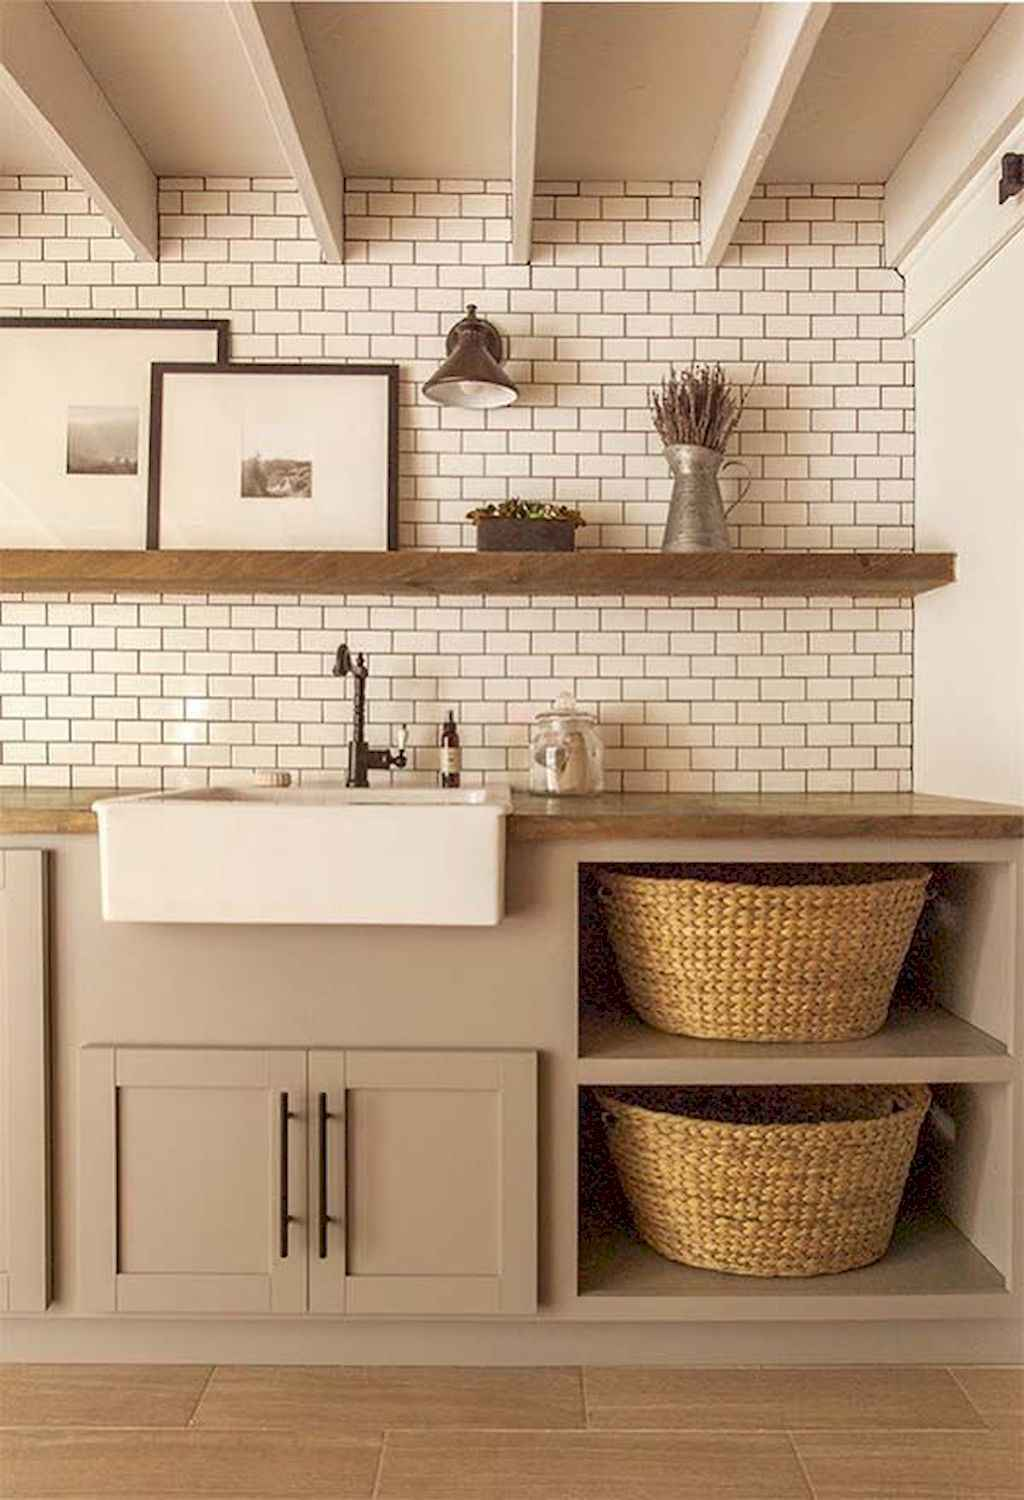 45 Rustic Farmhouse Laundry Room Design Ideas and Makeover (39)